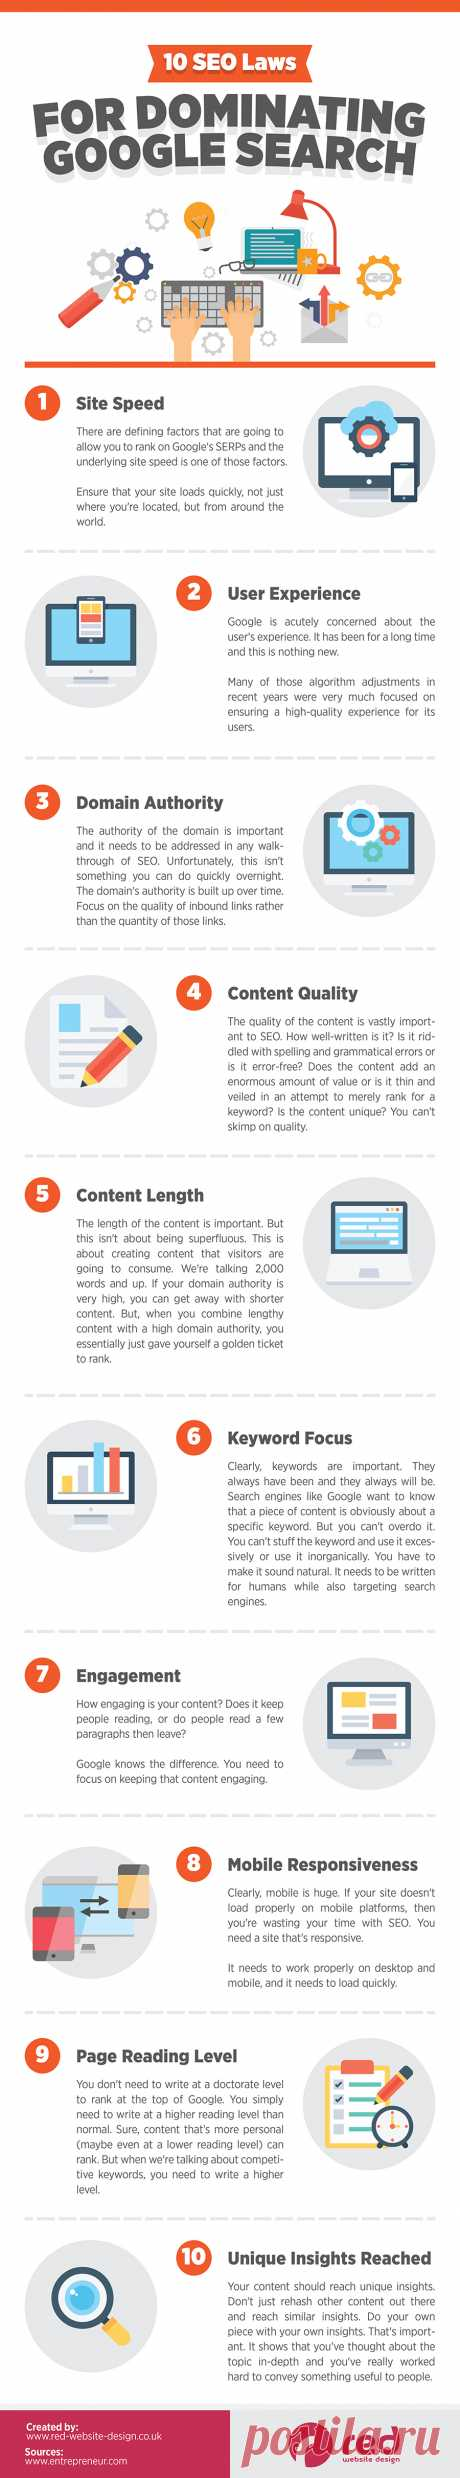 10 SEO Laws to Help You Dominate Your Competitors on #Google Site Speed User Experience Domain Authority Content Quality Content Length Keyword Focus Engagement Mobile Responsiveness Page Reading Level Unique Insights Reached